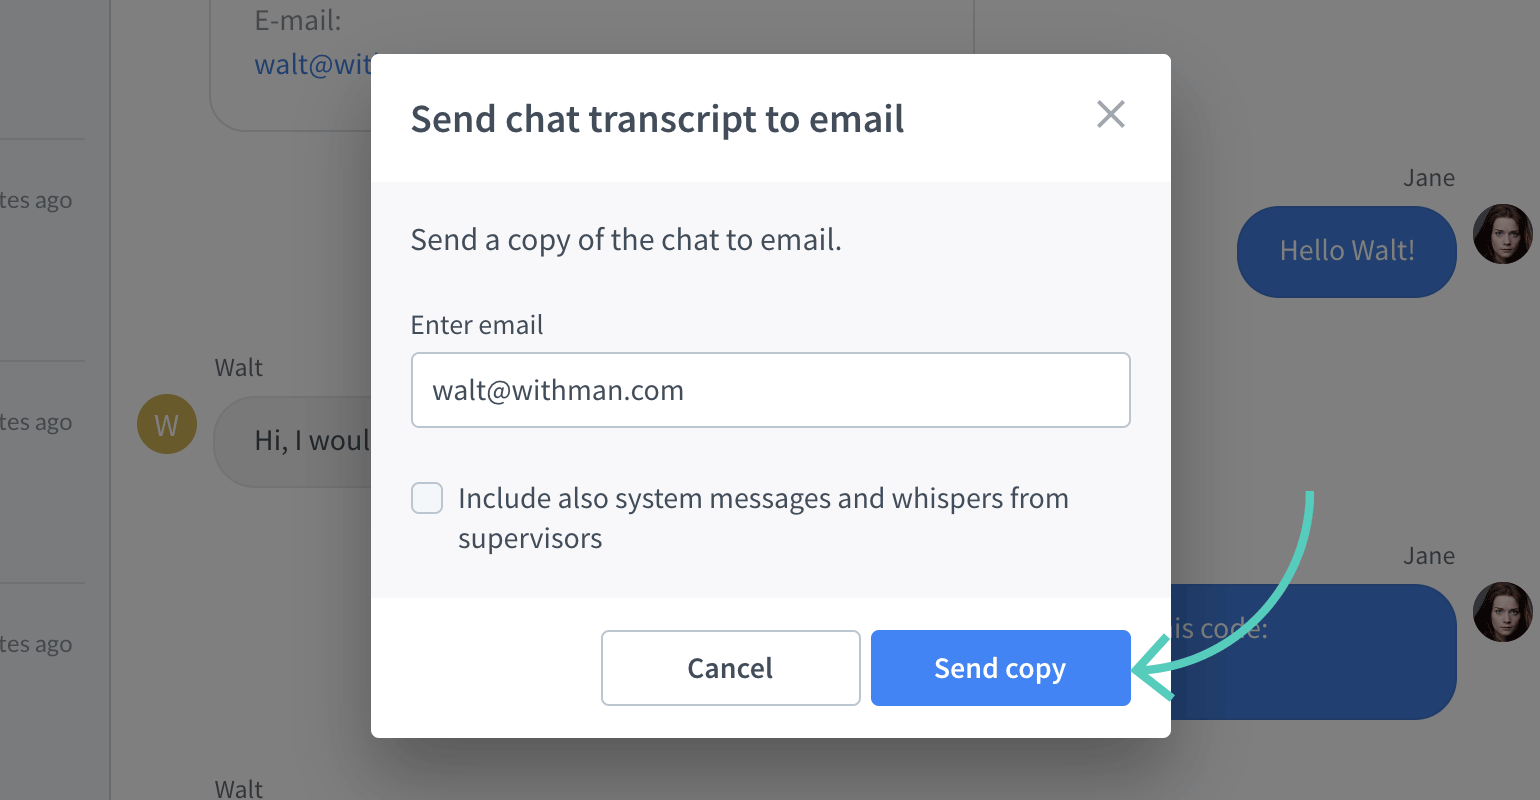 Send copy of chat transcript button